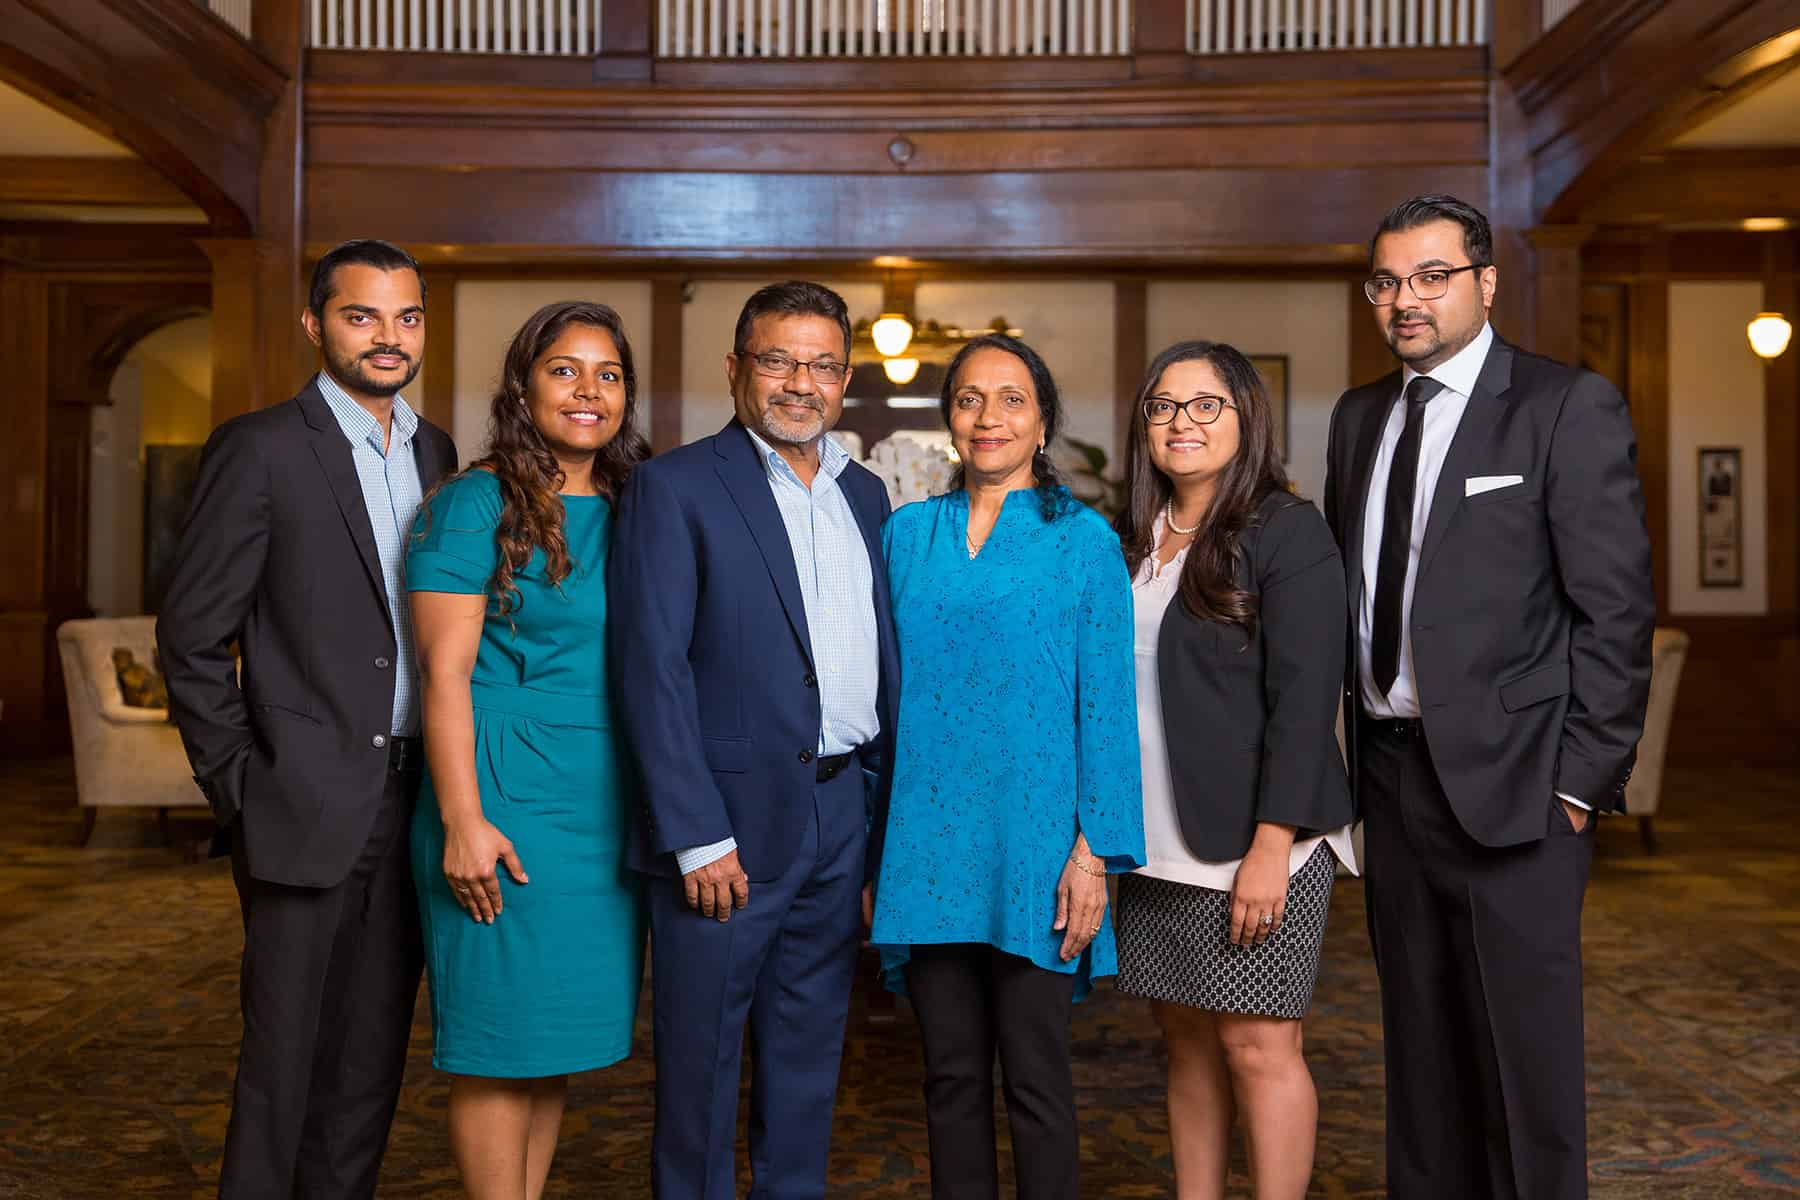 Sharad Patel and his family have made their home in Americus.